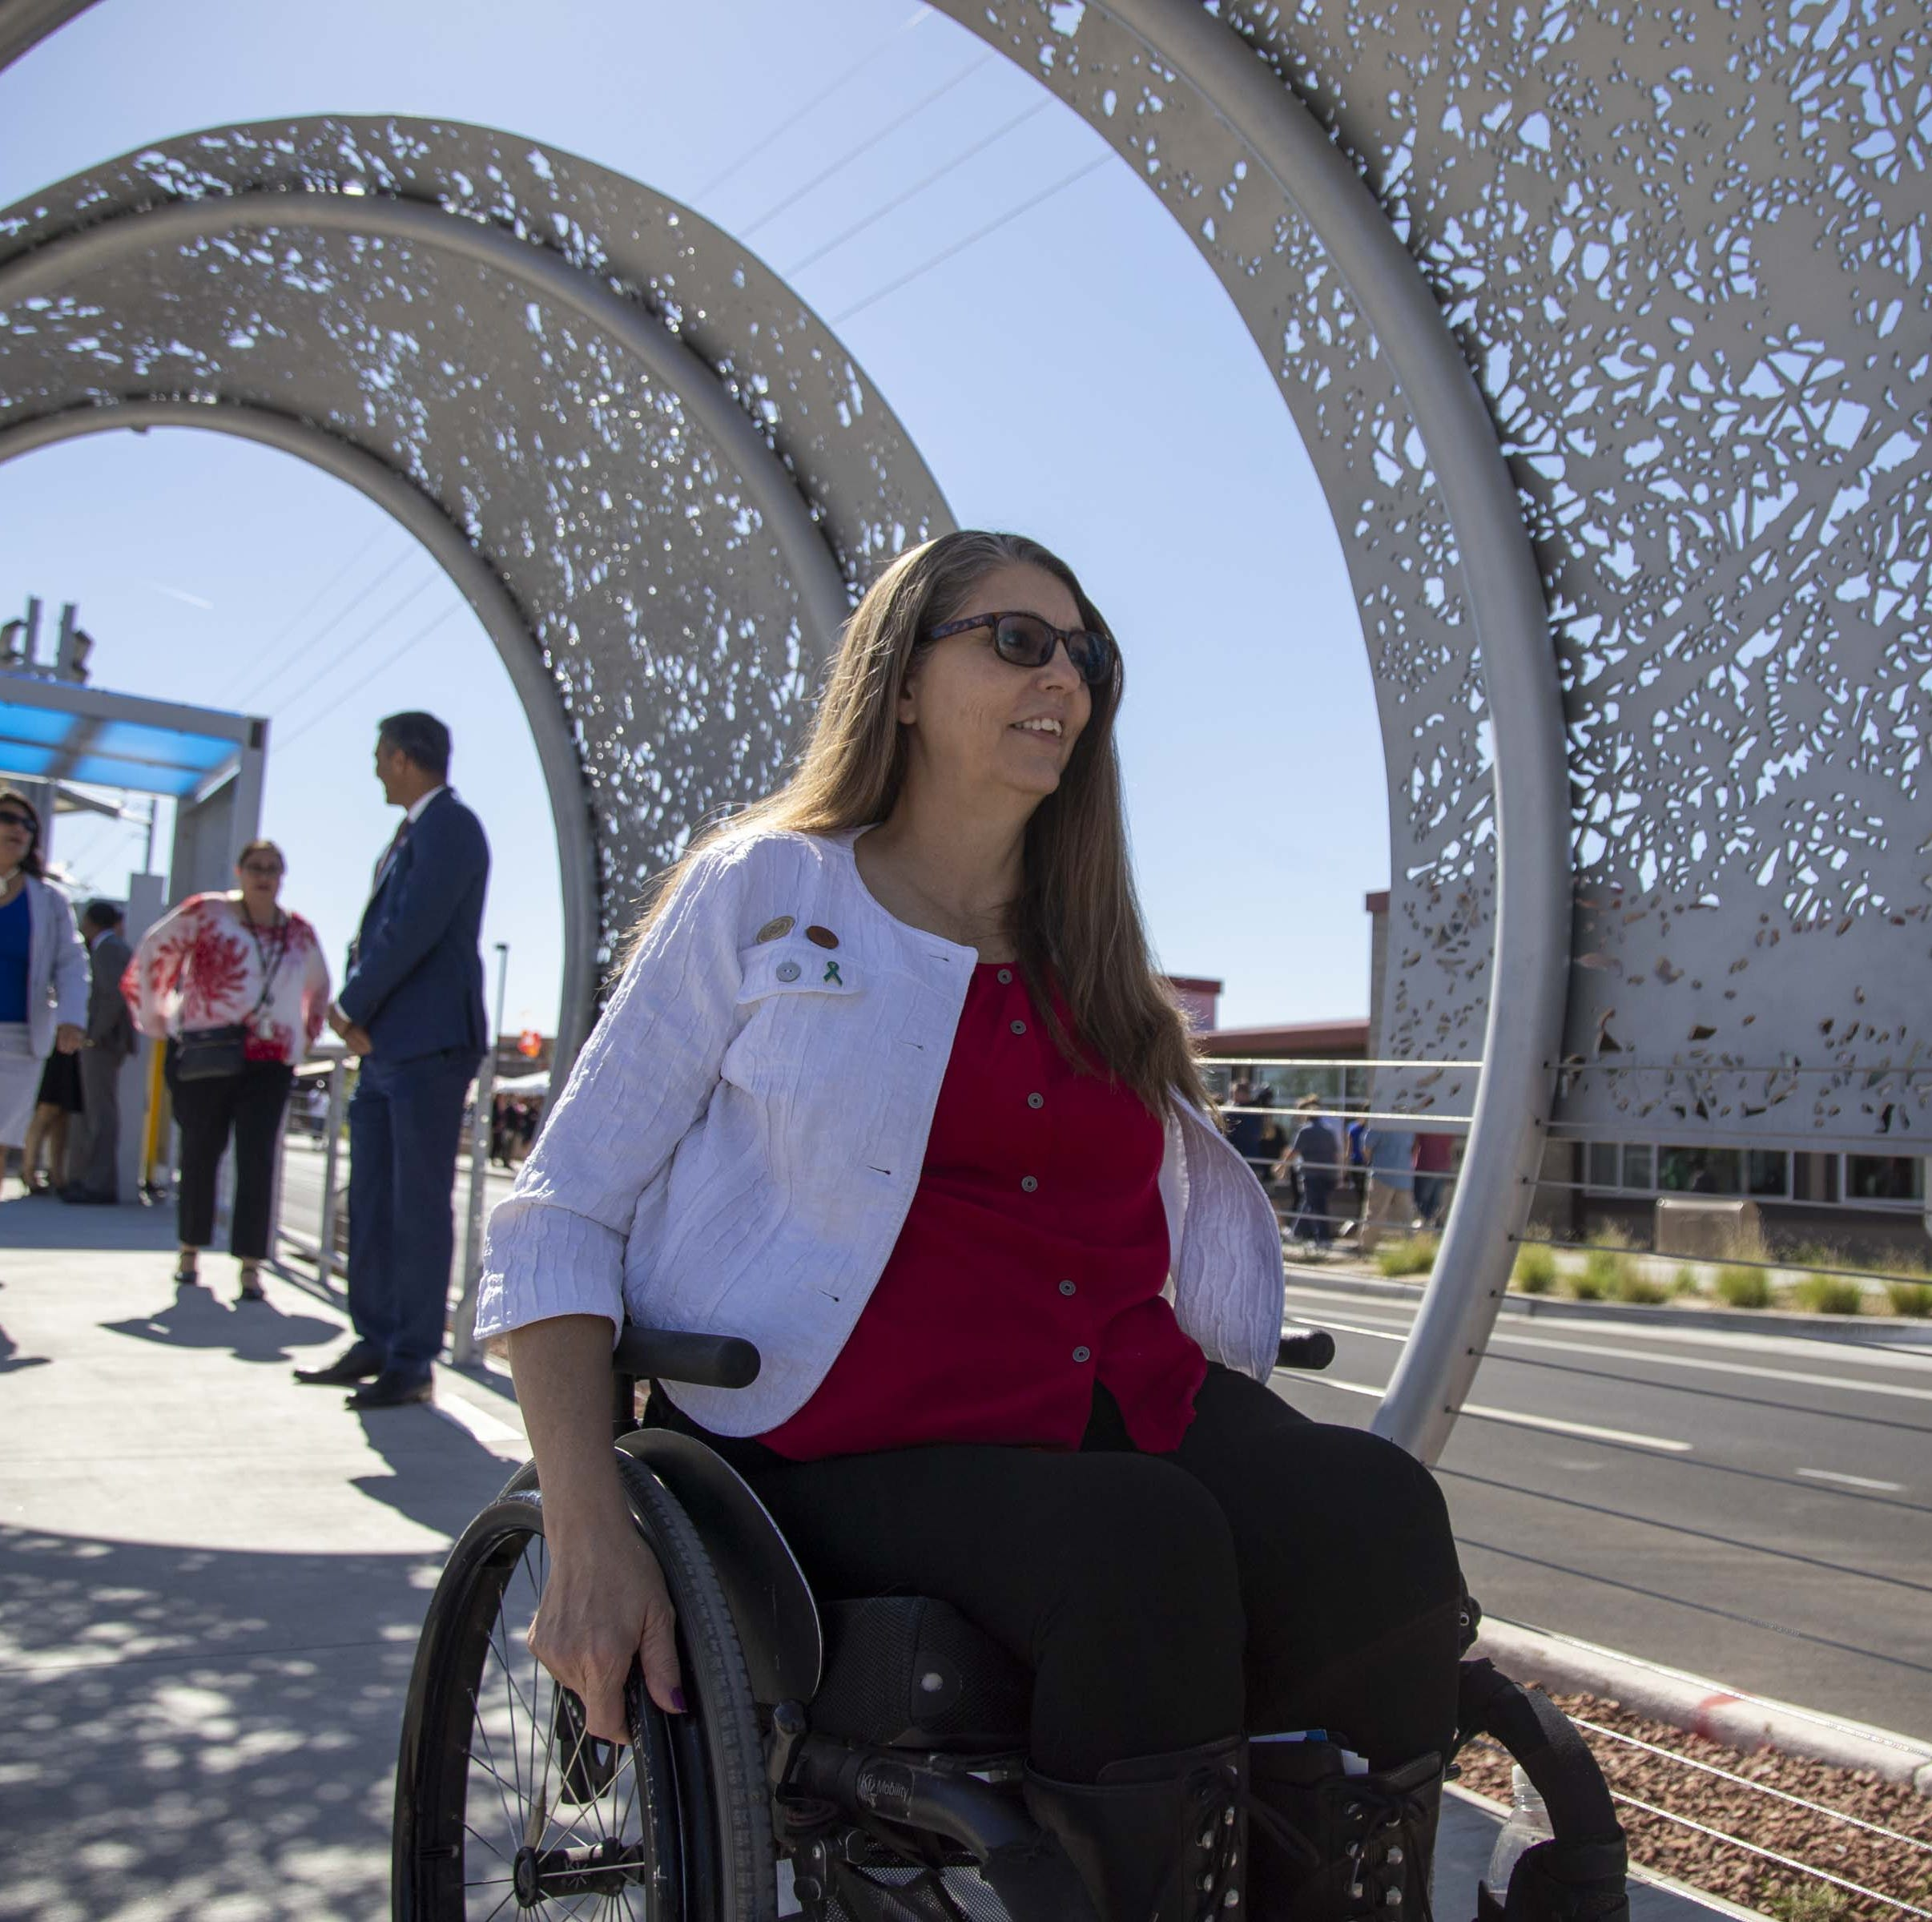 Arizona lawmaker who uses wheelchair rolls home after Legislature goes into wee hours